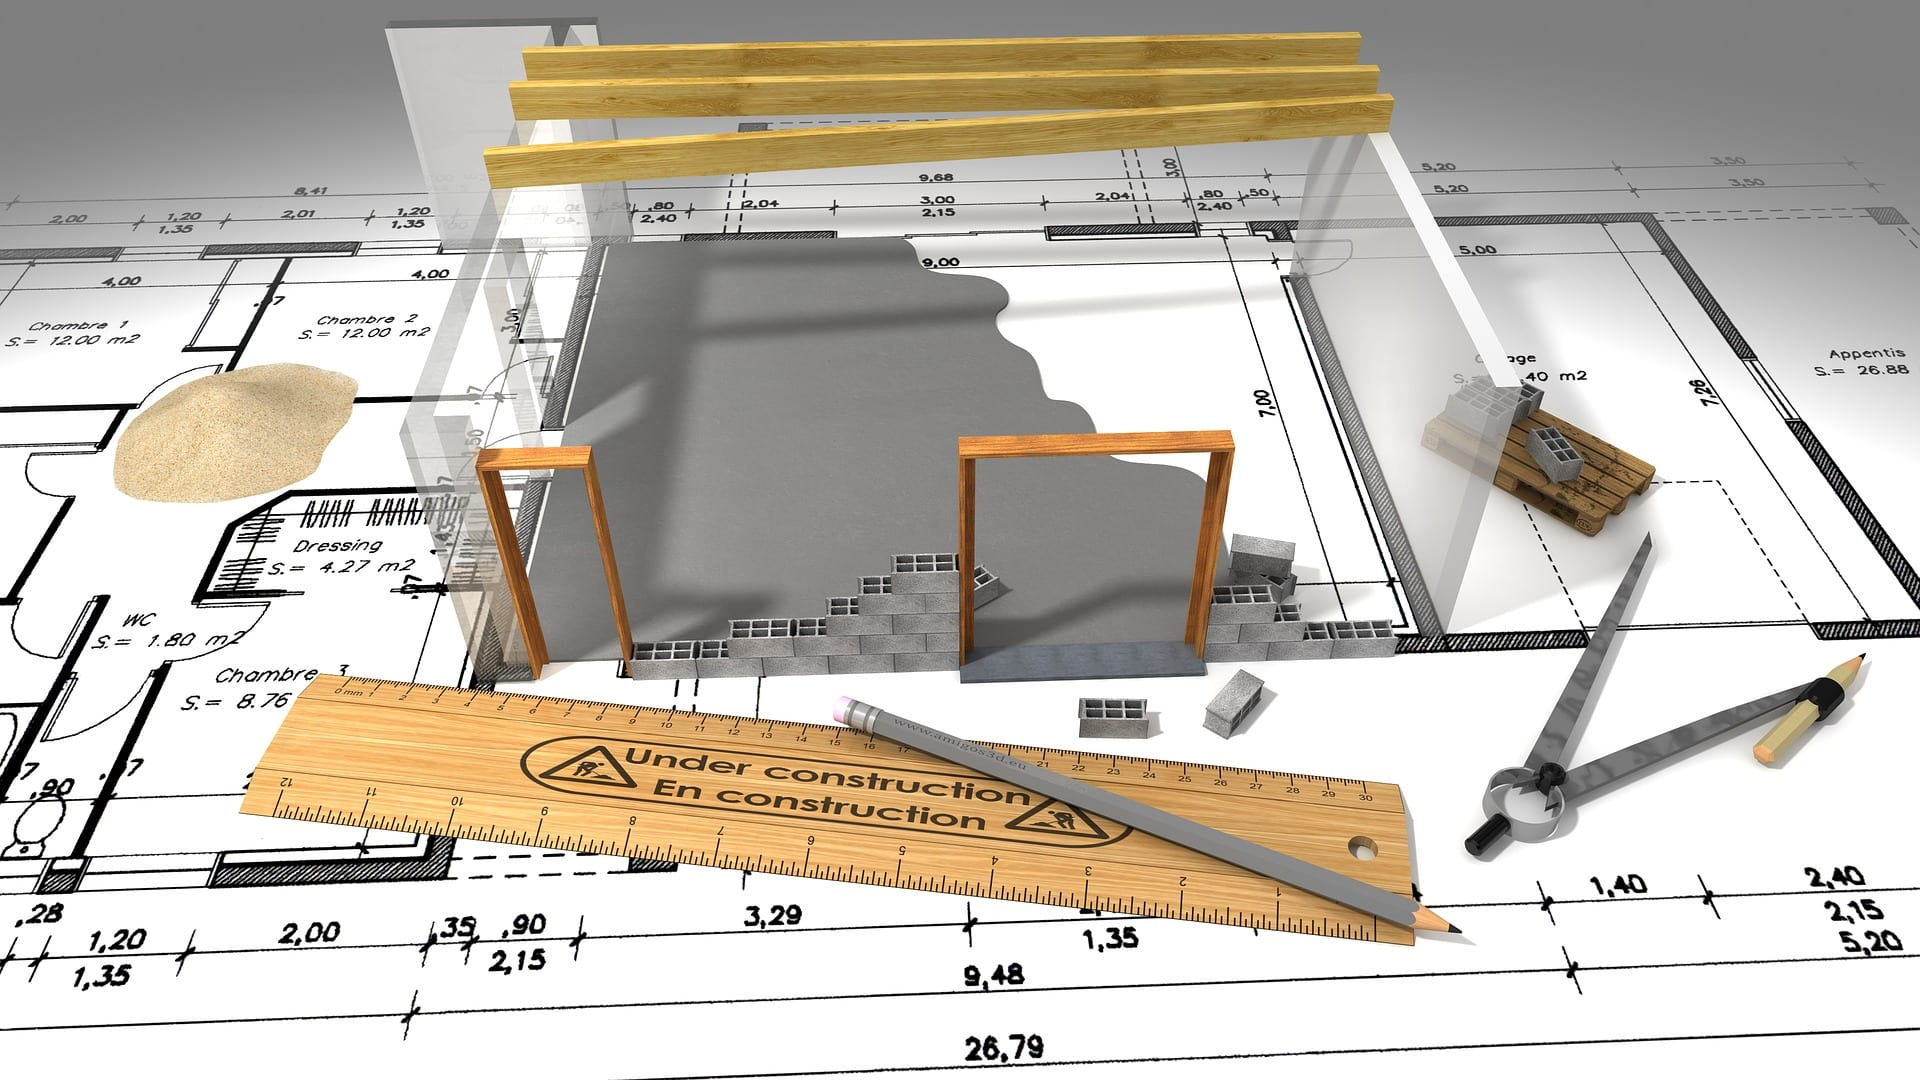 Bespoke Construction - Architects - Builders